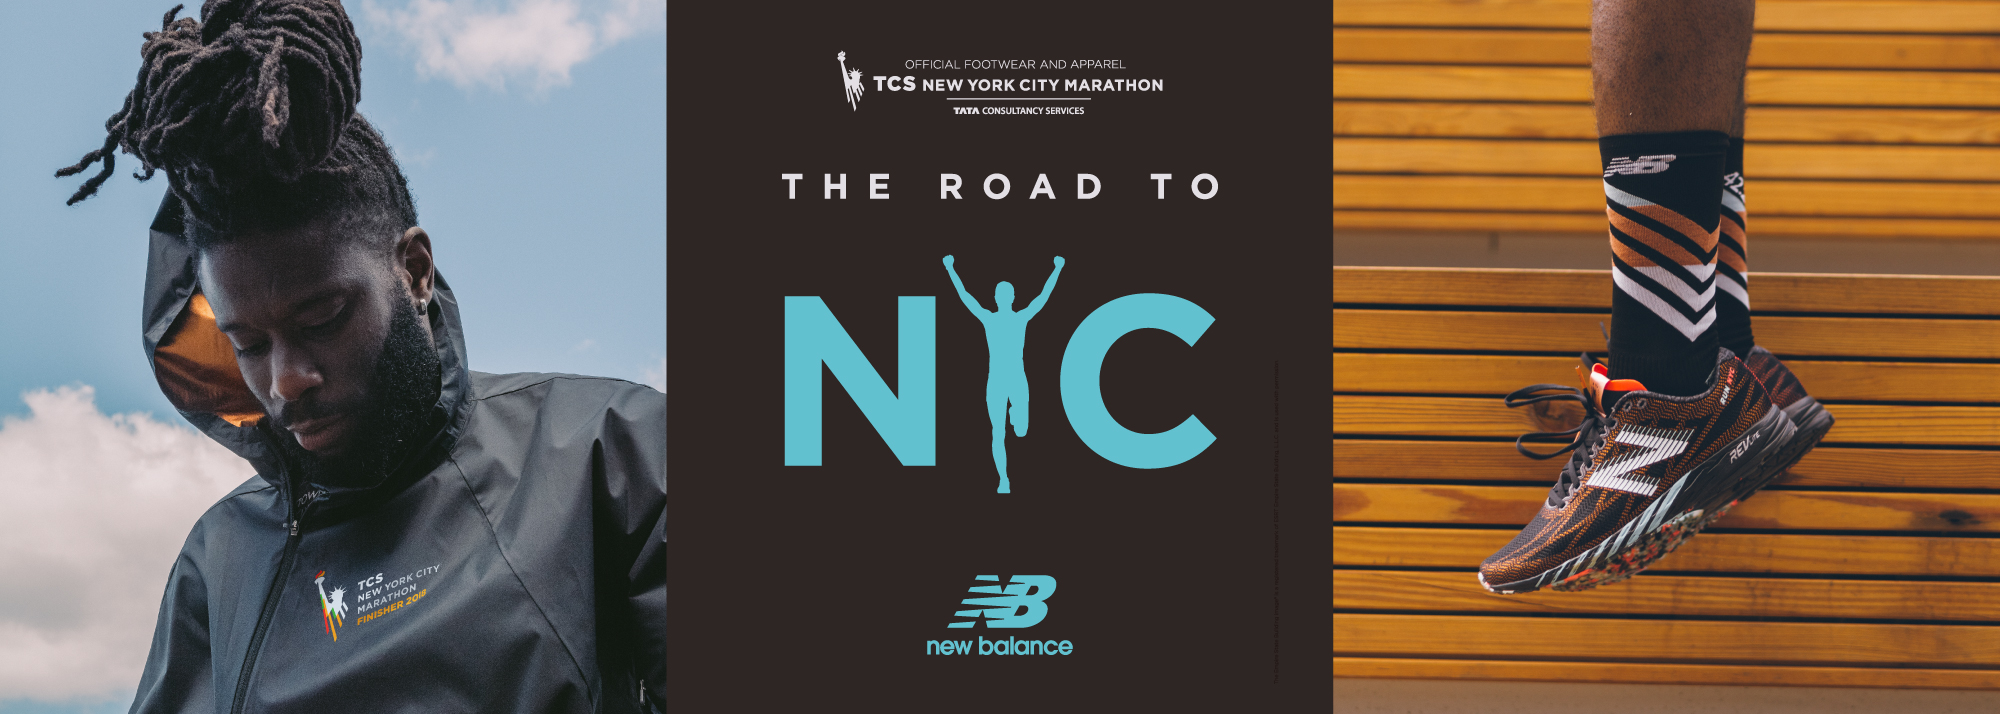 Newbalance「NEW YORK CITY MARATHON」オフィシャルグッズ